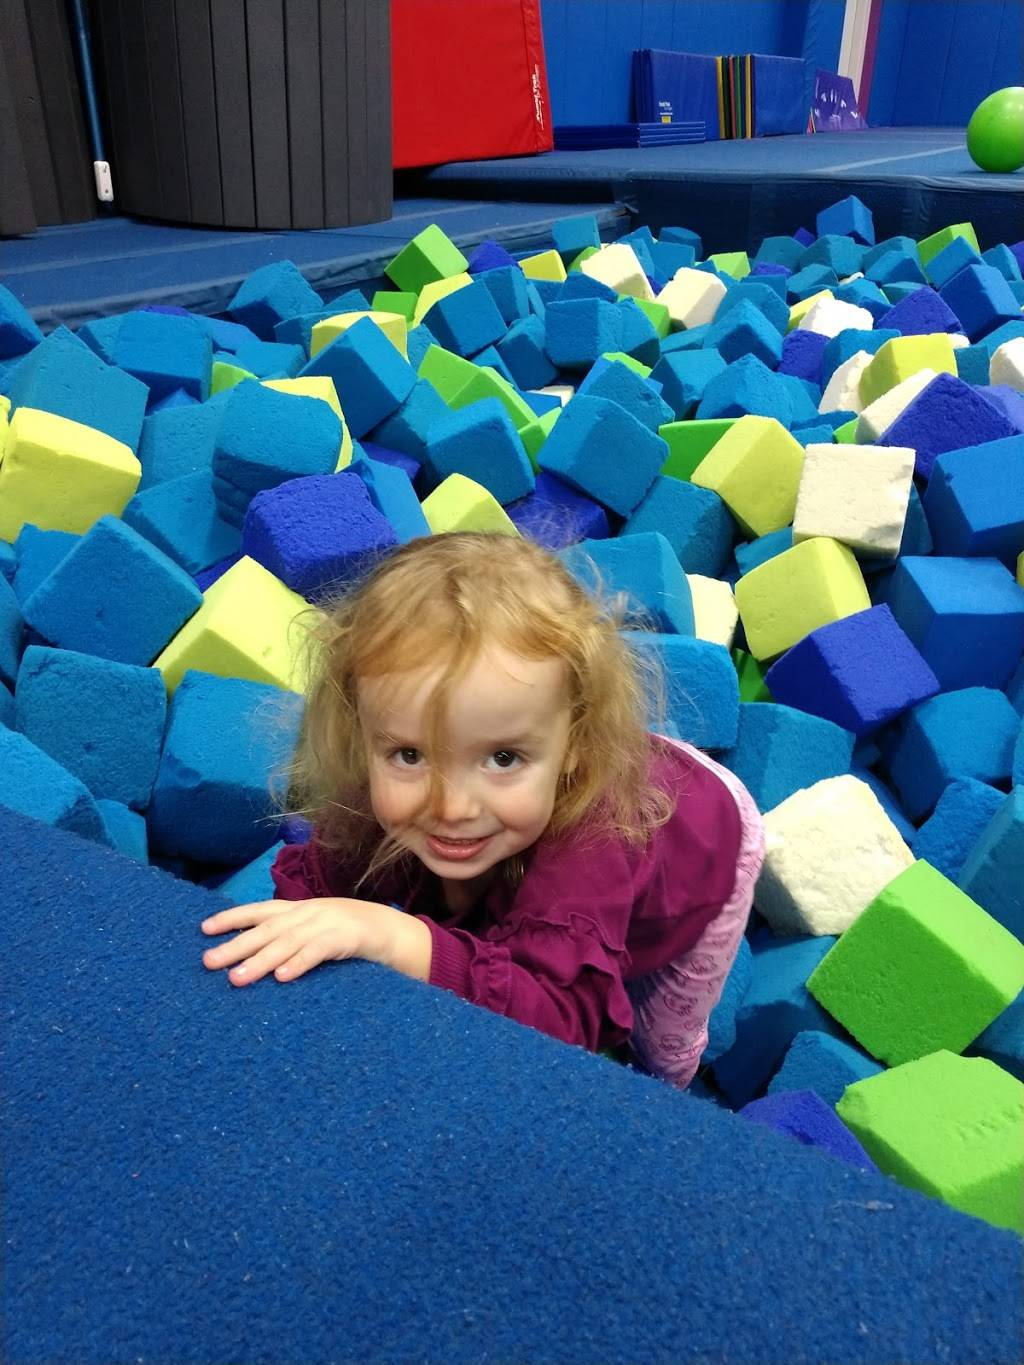 Lindseys Tumbling School - gym  | Photo 4 of 9 | Address: 700 Cochran Mill Rd, Clairton, PA 15025, USA | Phone: (412) 386-8065